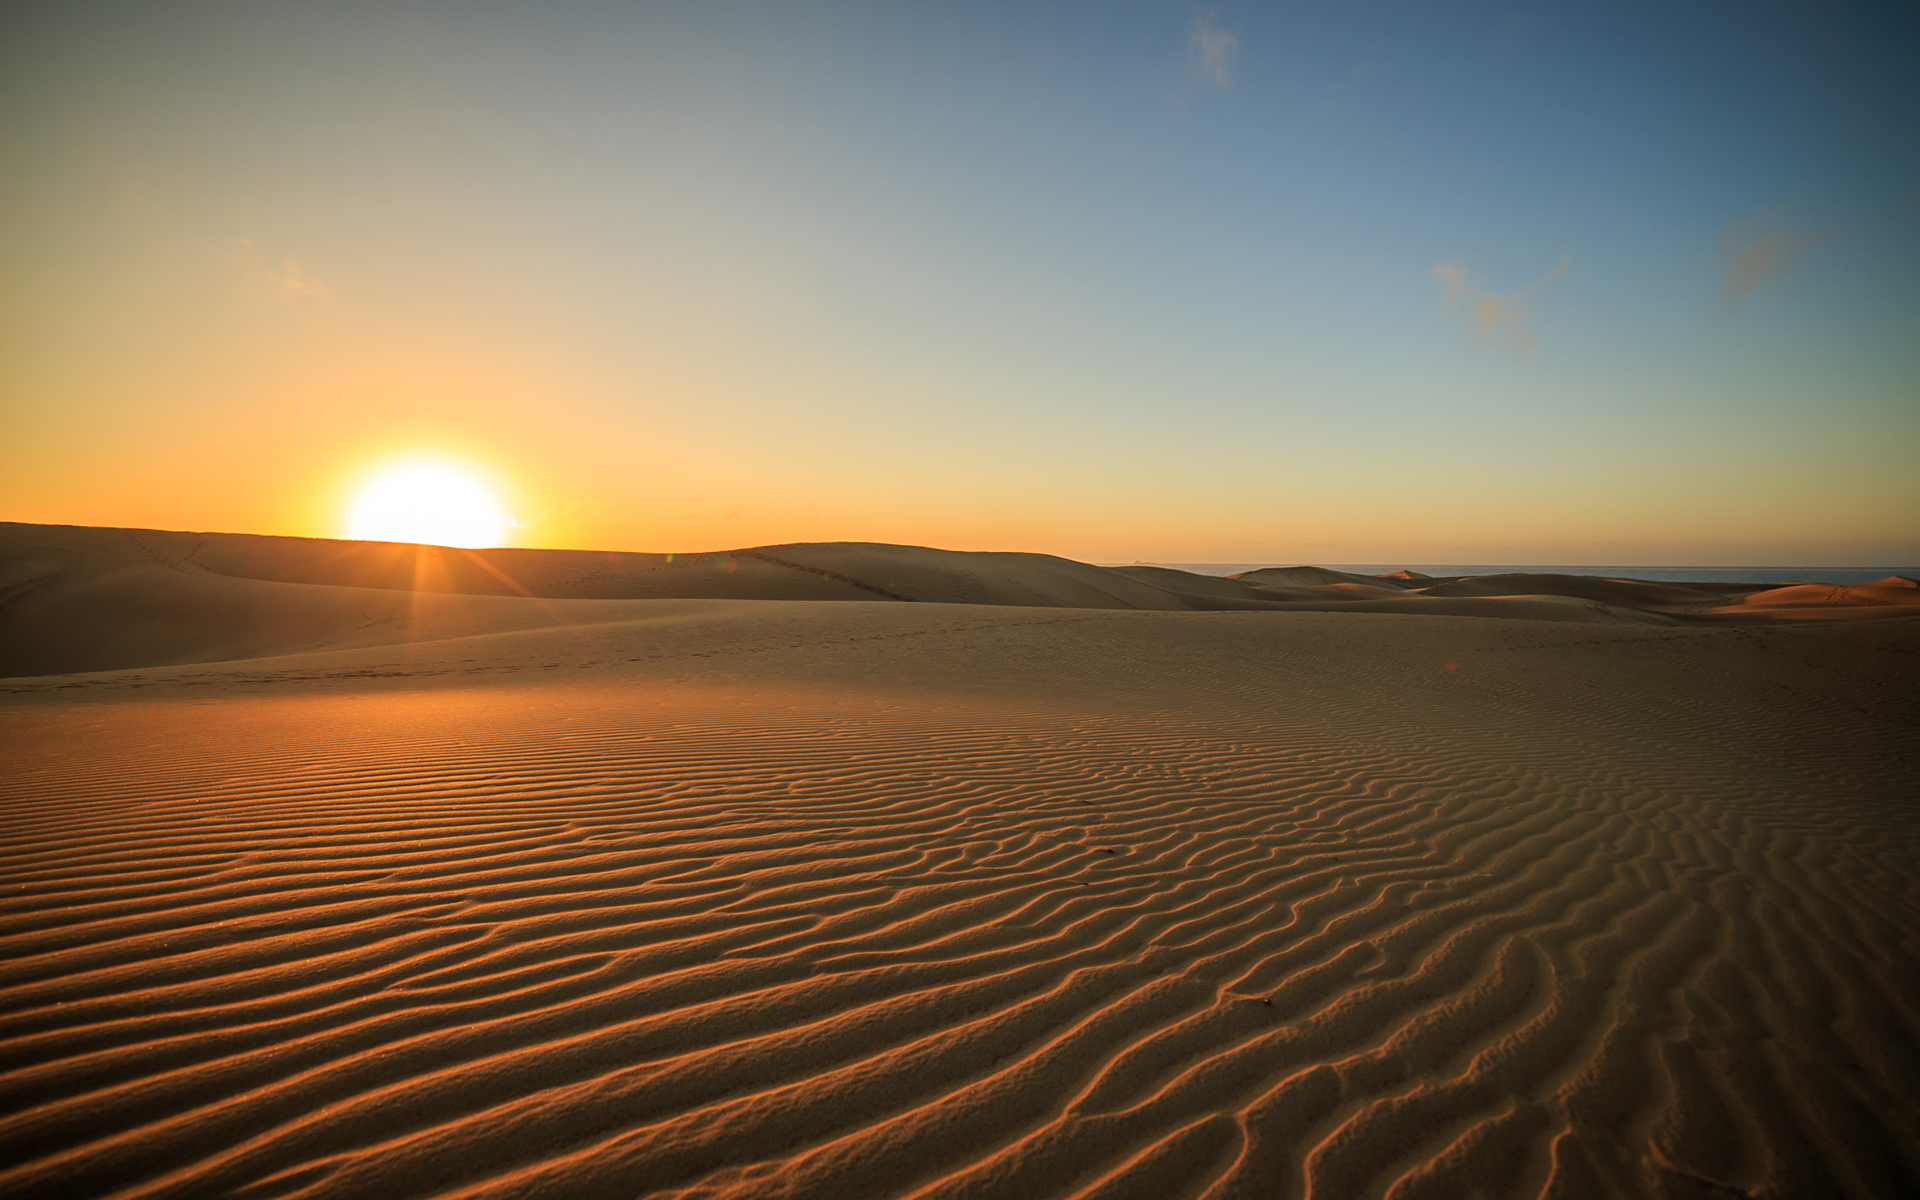 sunset desert wallpapers sunset desert stock photos